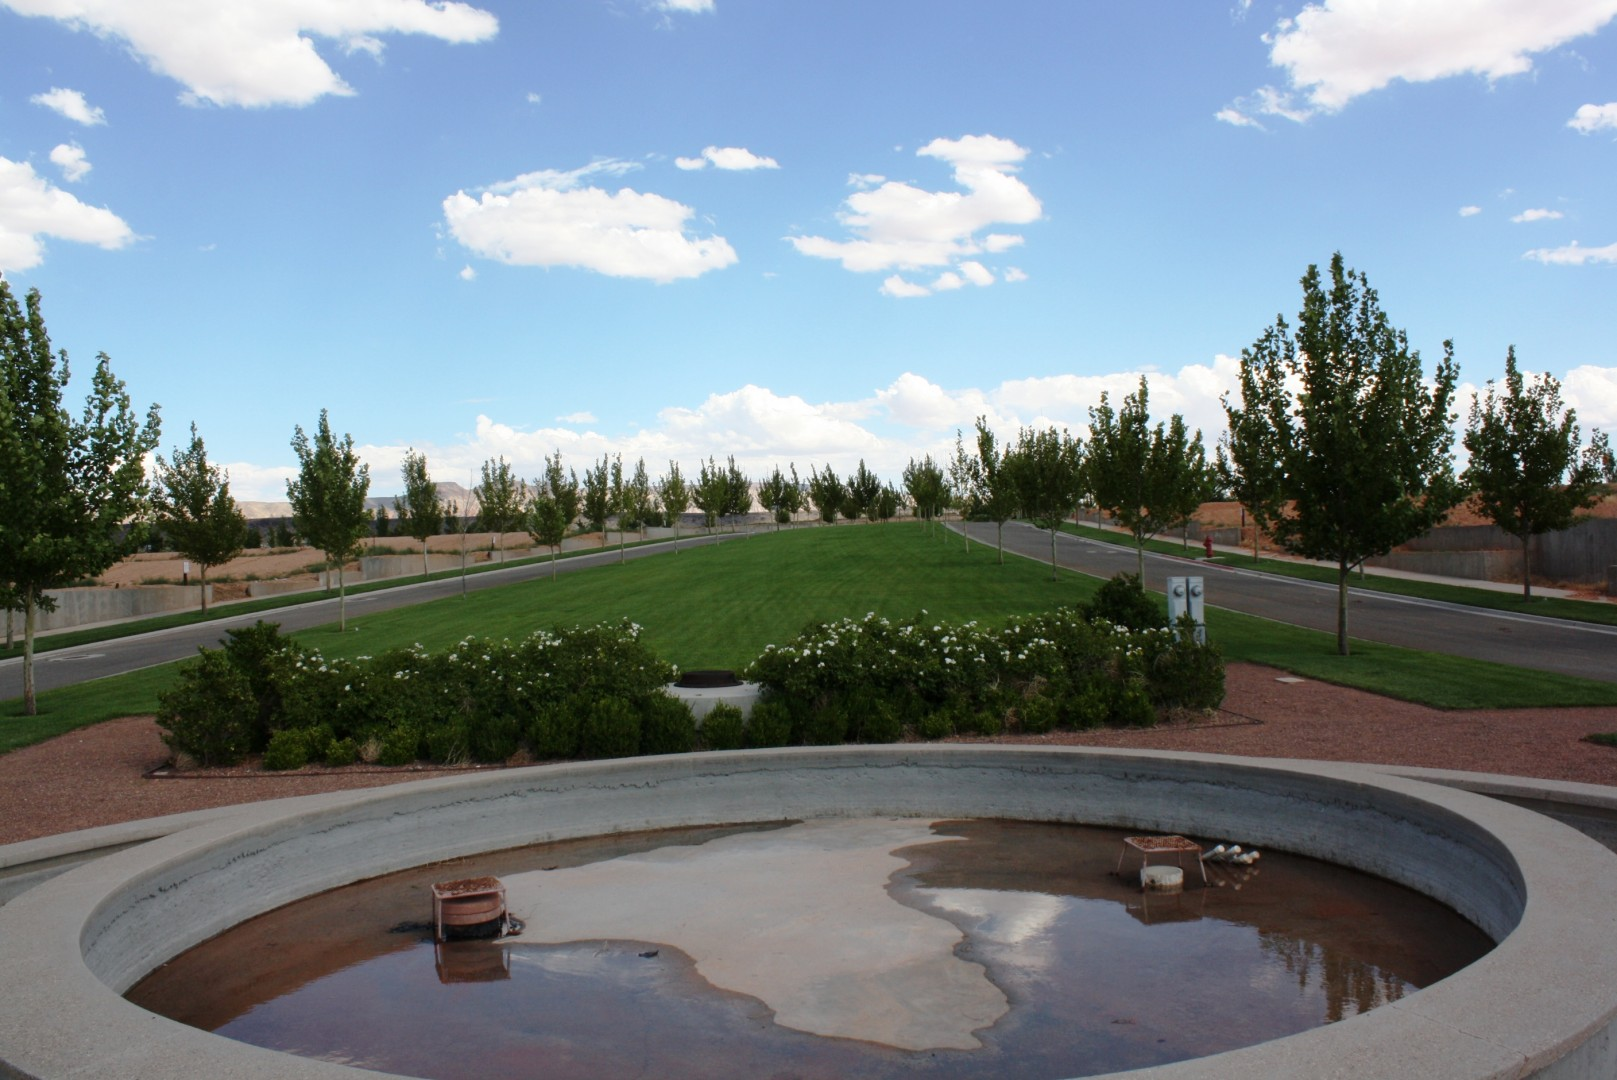 A nearly-empty fountain greets prospective home buyers in Elim Valley's tree-lined streets, July 29, 2013   Photo by Reuben Wadsworth, St. George News.